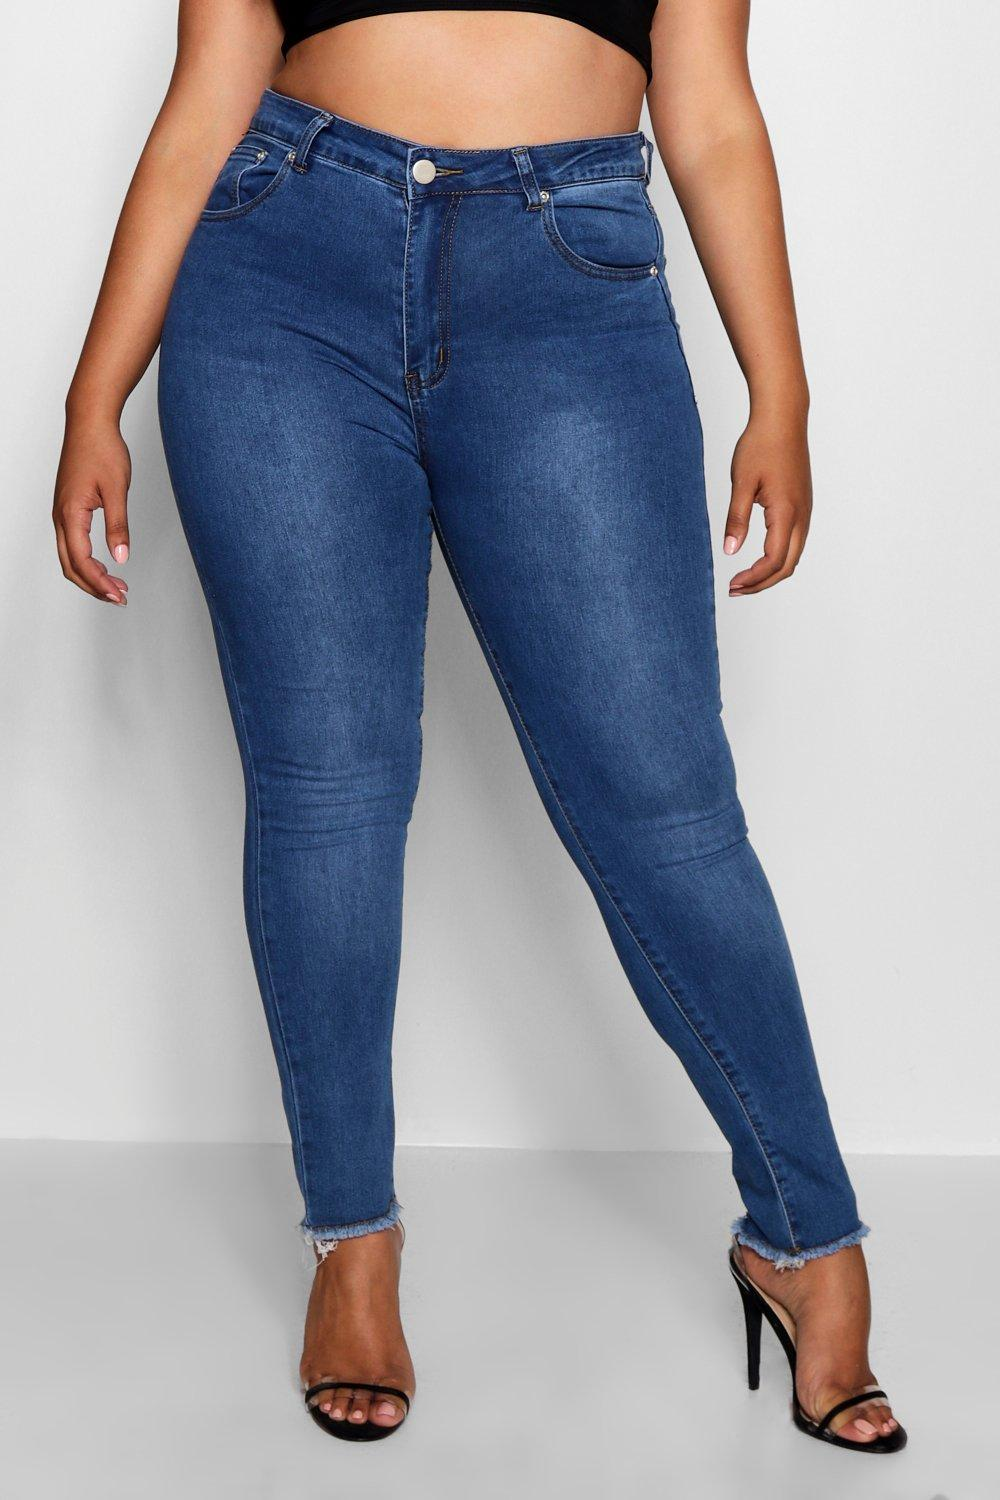 Jeans blue Back Stretch Rip mid Skinny Plus RWvFqwIn